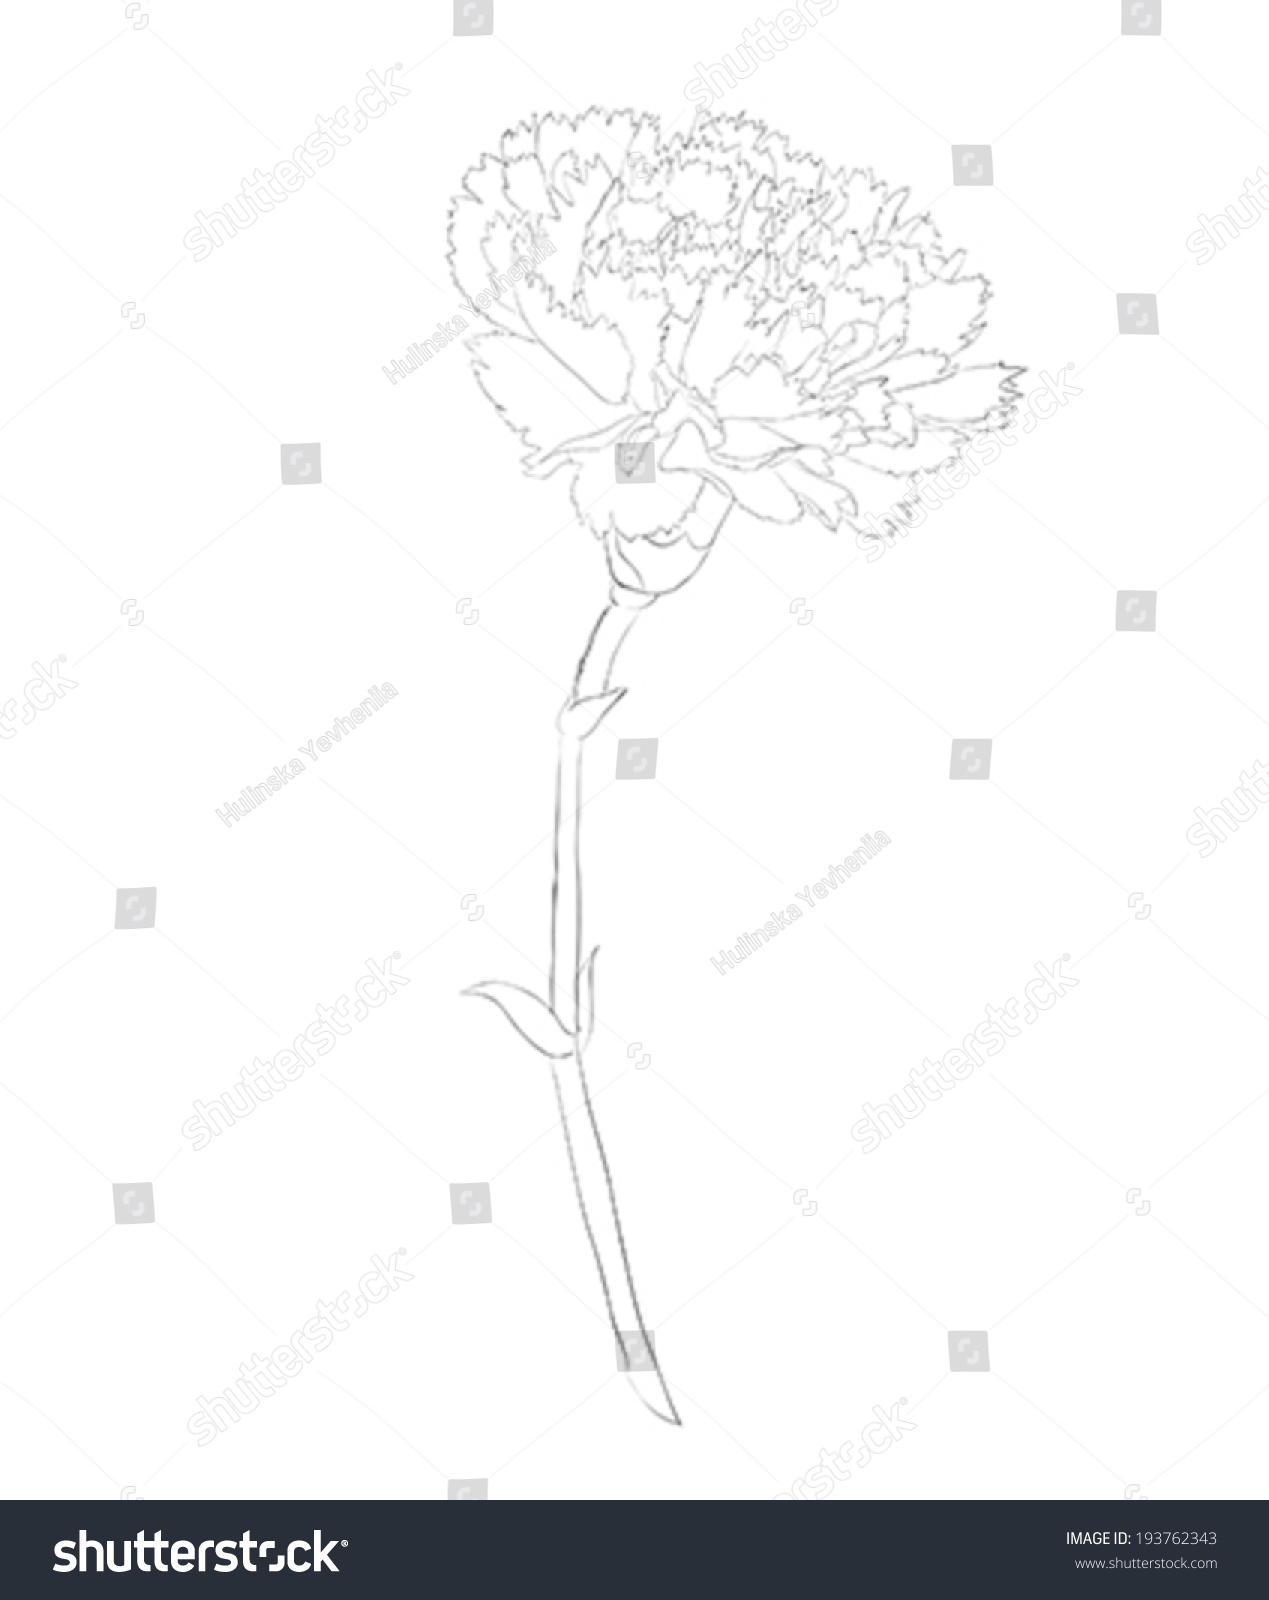 carnation floral diagram wiring diagram online Water Lily Anatomy beautiful monochrome black white carnation flower stock vector carnation clip art carnation floral diagram